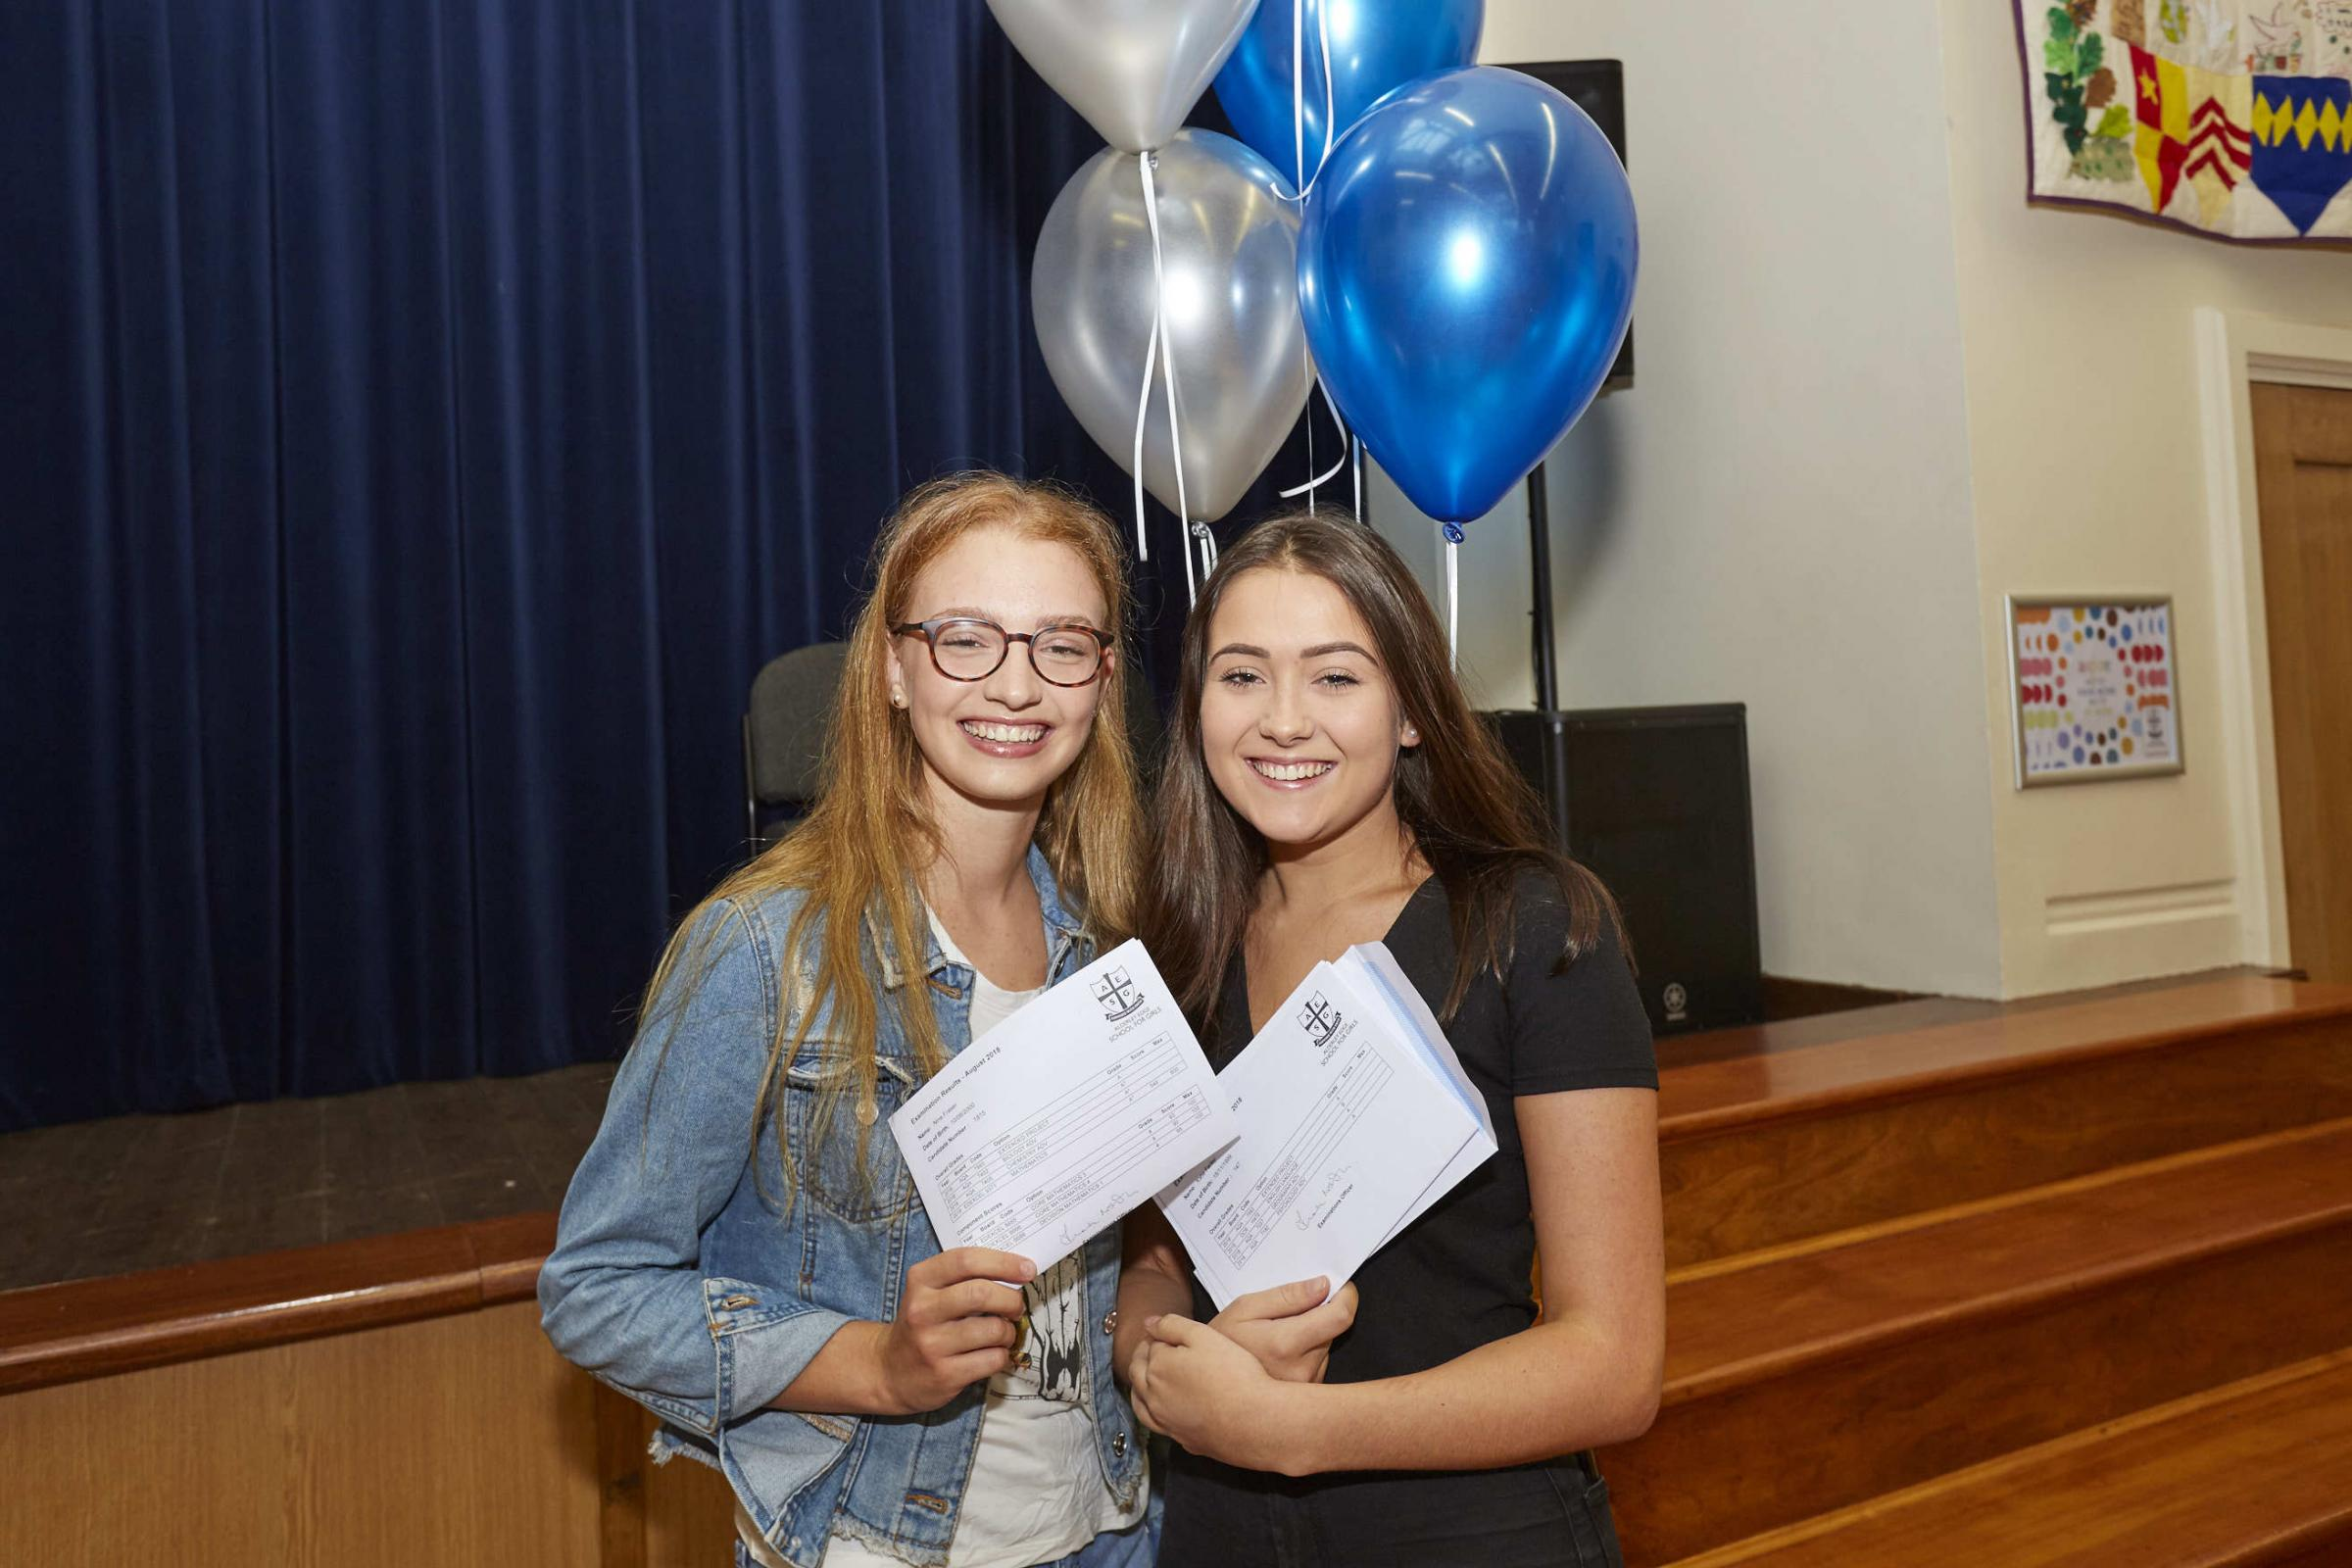 Students celebrate their successes